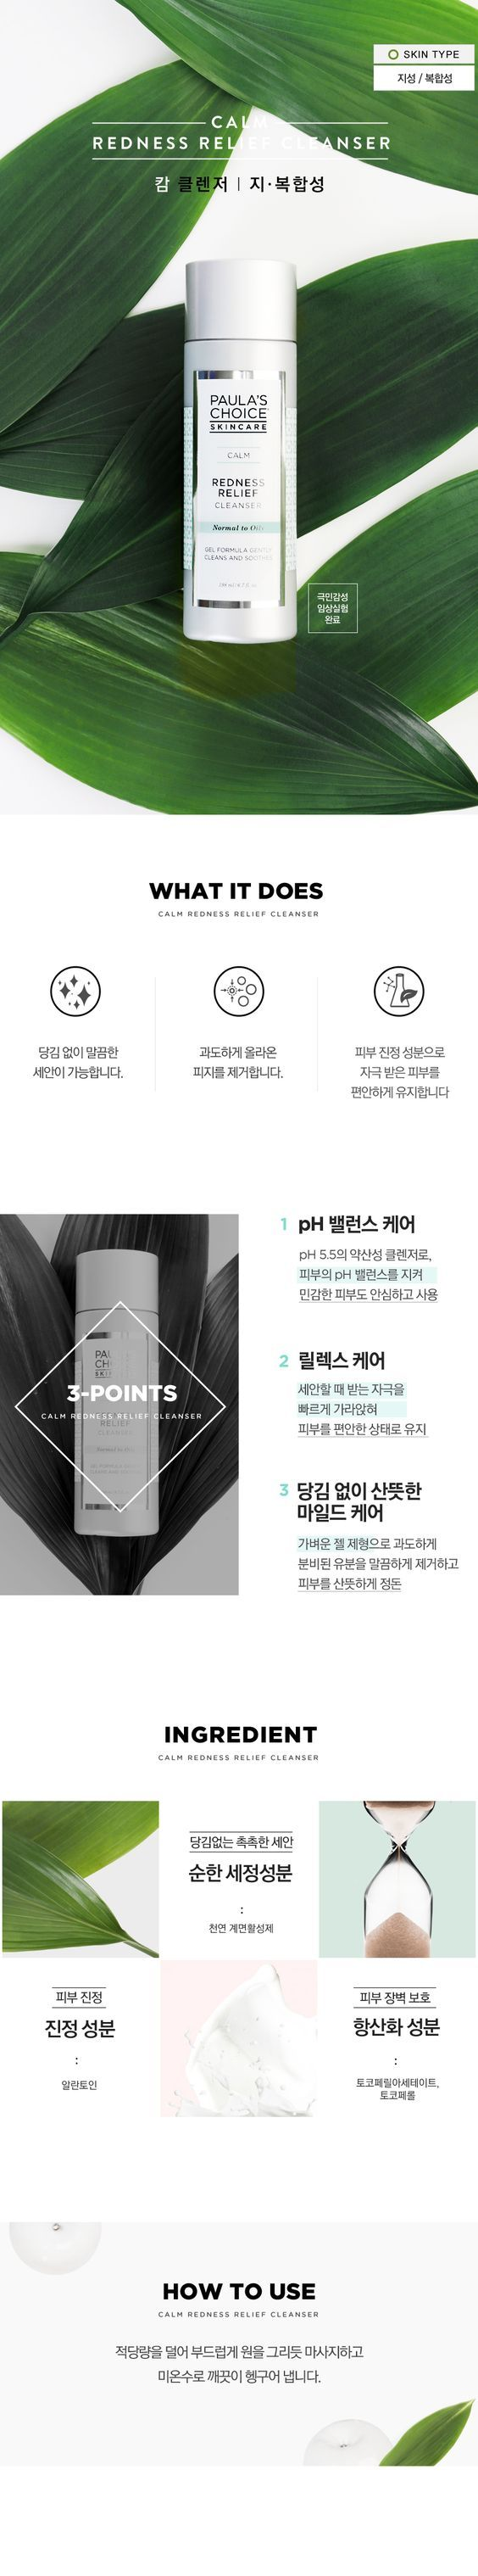 [paula'schoice] cosmetics / webpage / toner / web / promotion / event / webdesign / layout / 상세페이지 / 화장품 / 폴라초이스: